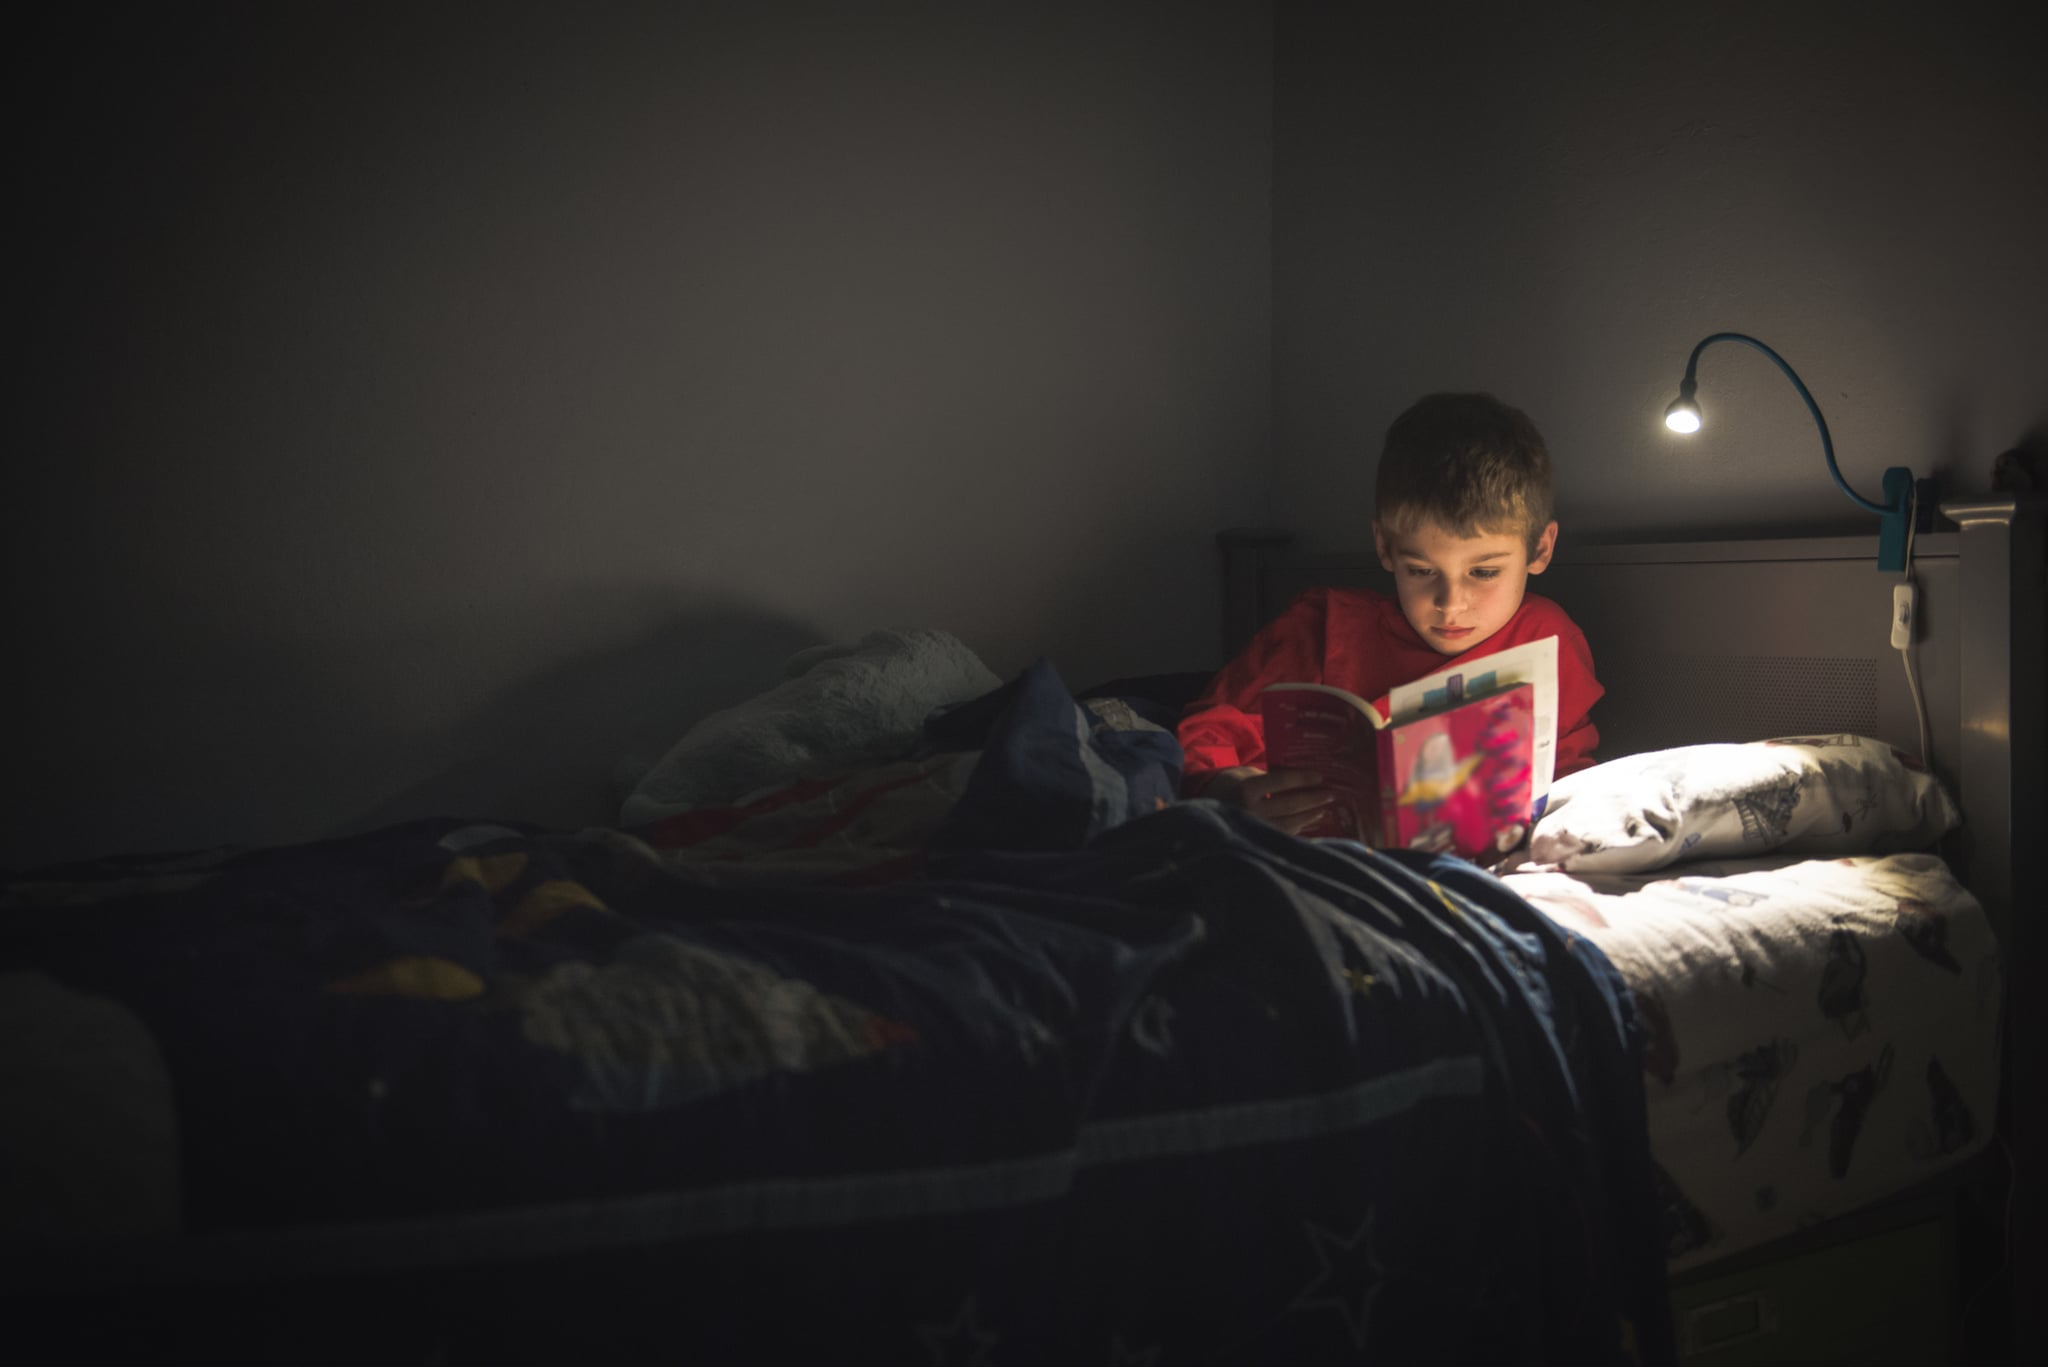 An 8 year old boy is in his bed at night.  His room is dark and lit only by his reading lamp illuminating him and his book.